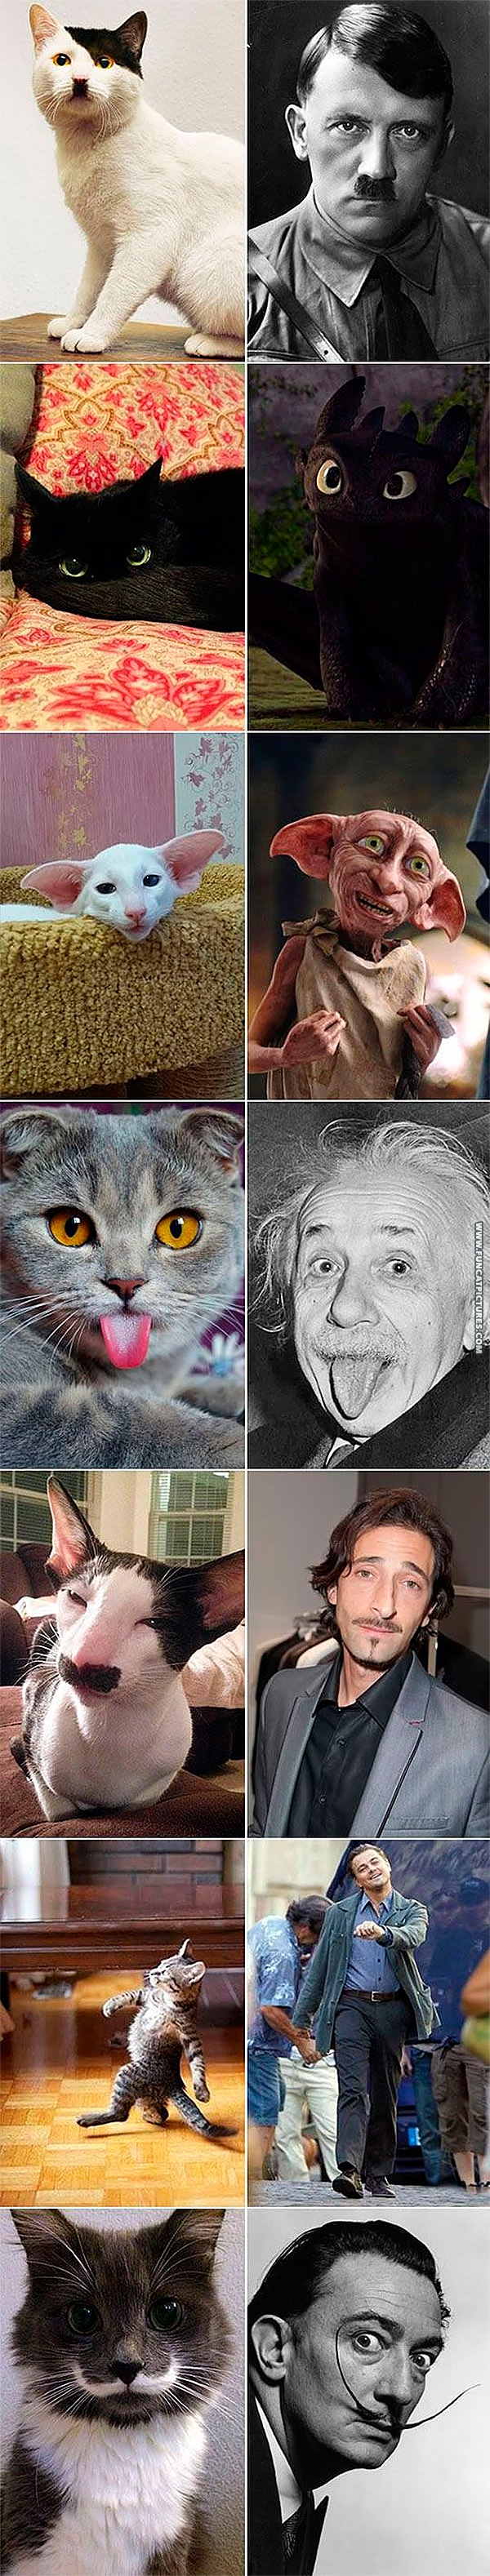 funny-cat-pictures-cats-and-their-doppelganger.jpg